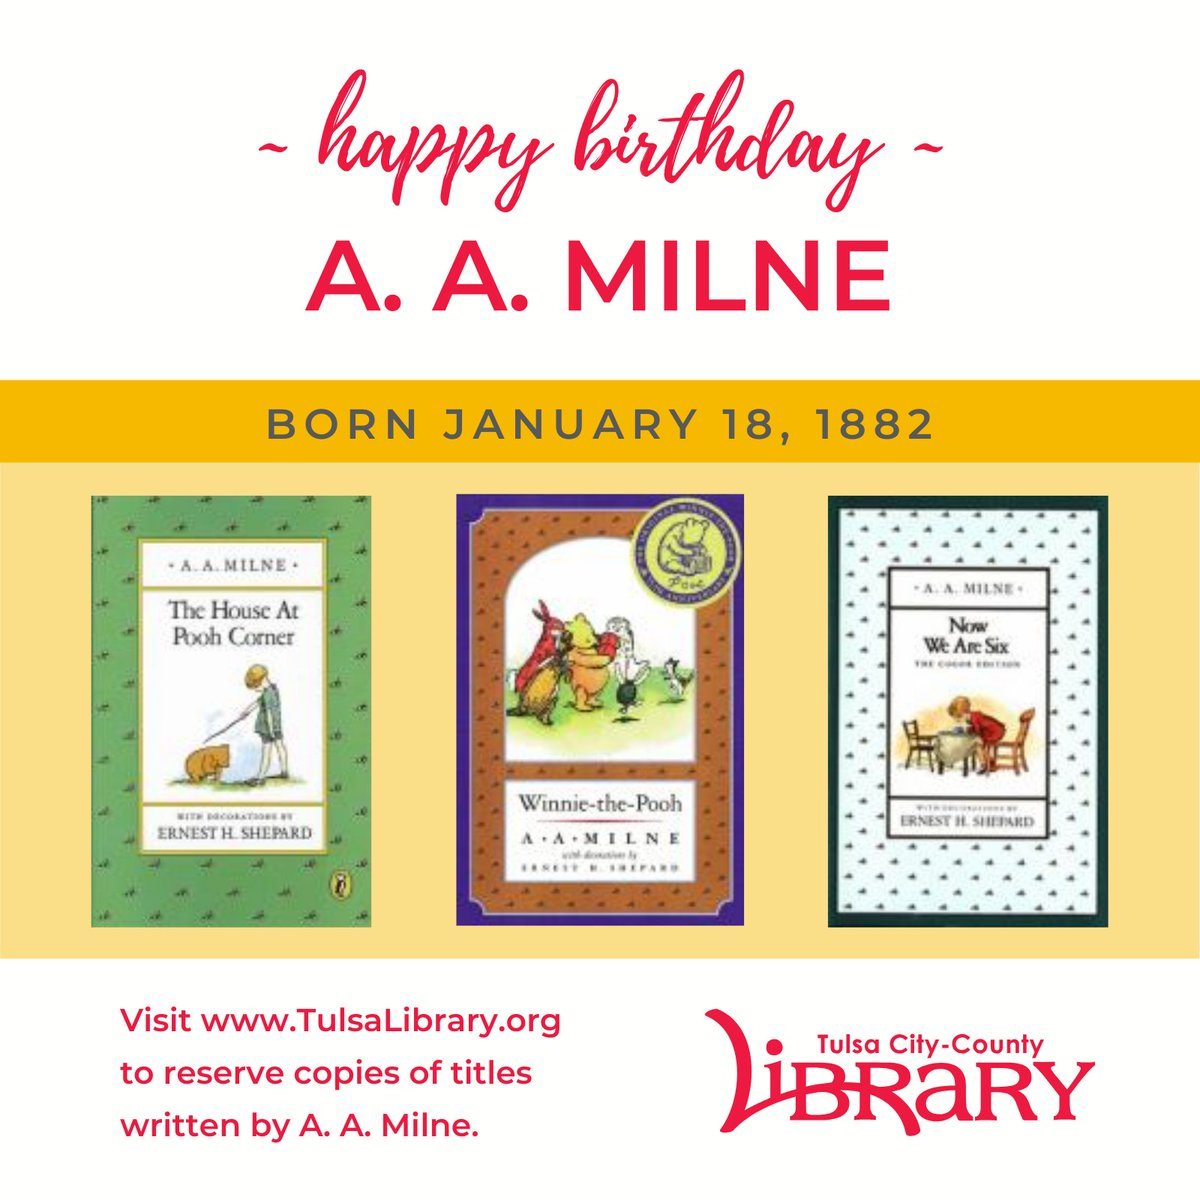 """""""Promise me you'll always remember: You're braver than you believe, and stronger than you seem, and smarter than you think."""" - A.A. Milne, Winnie-The-Pooh    #OnThisDay #authorbirthdays #library"""